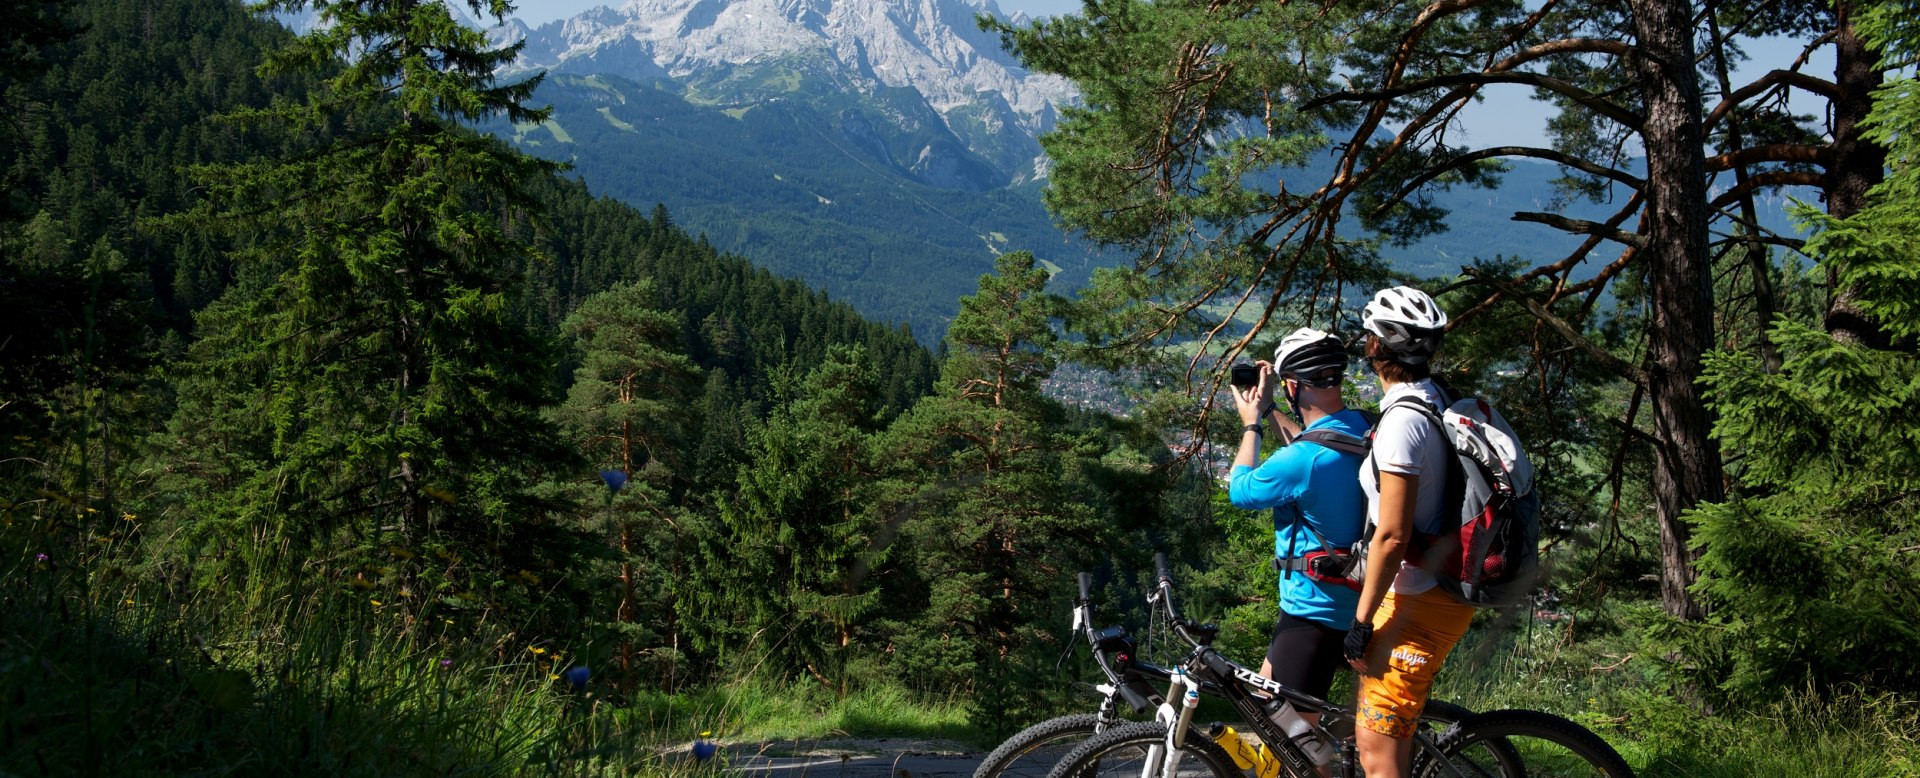 Mountainbiken in Grainau, © Zugspitzland